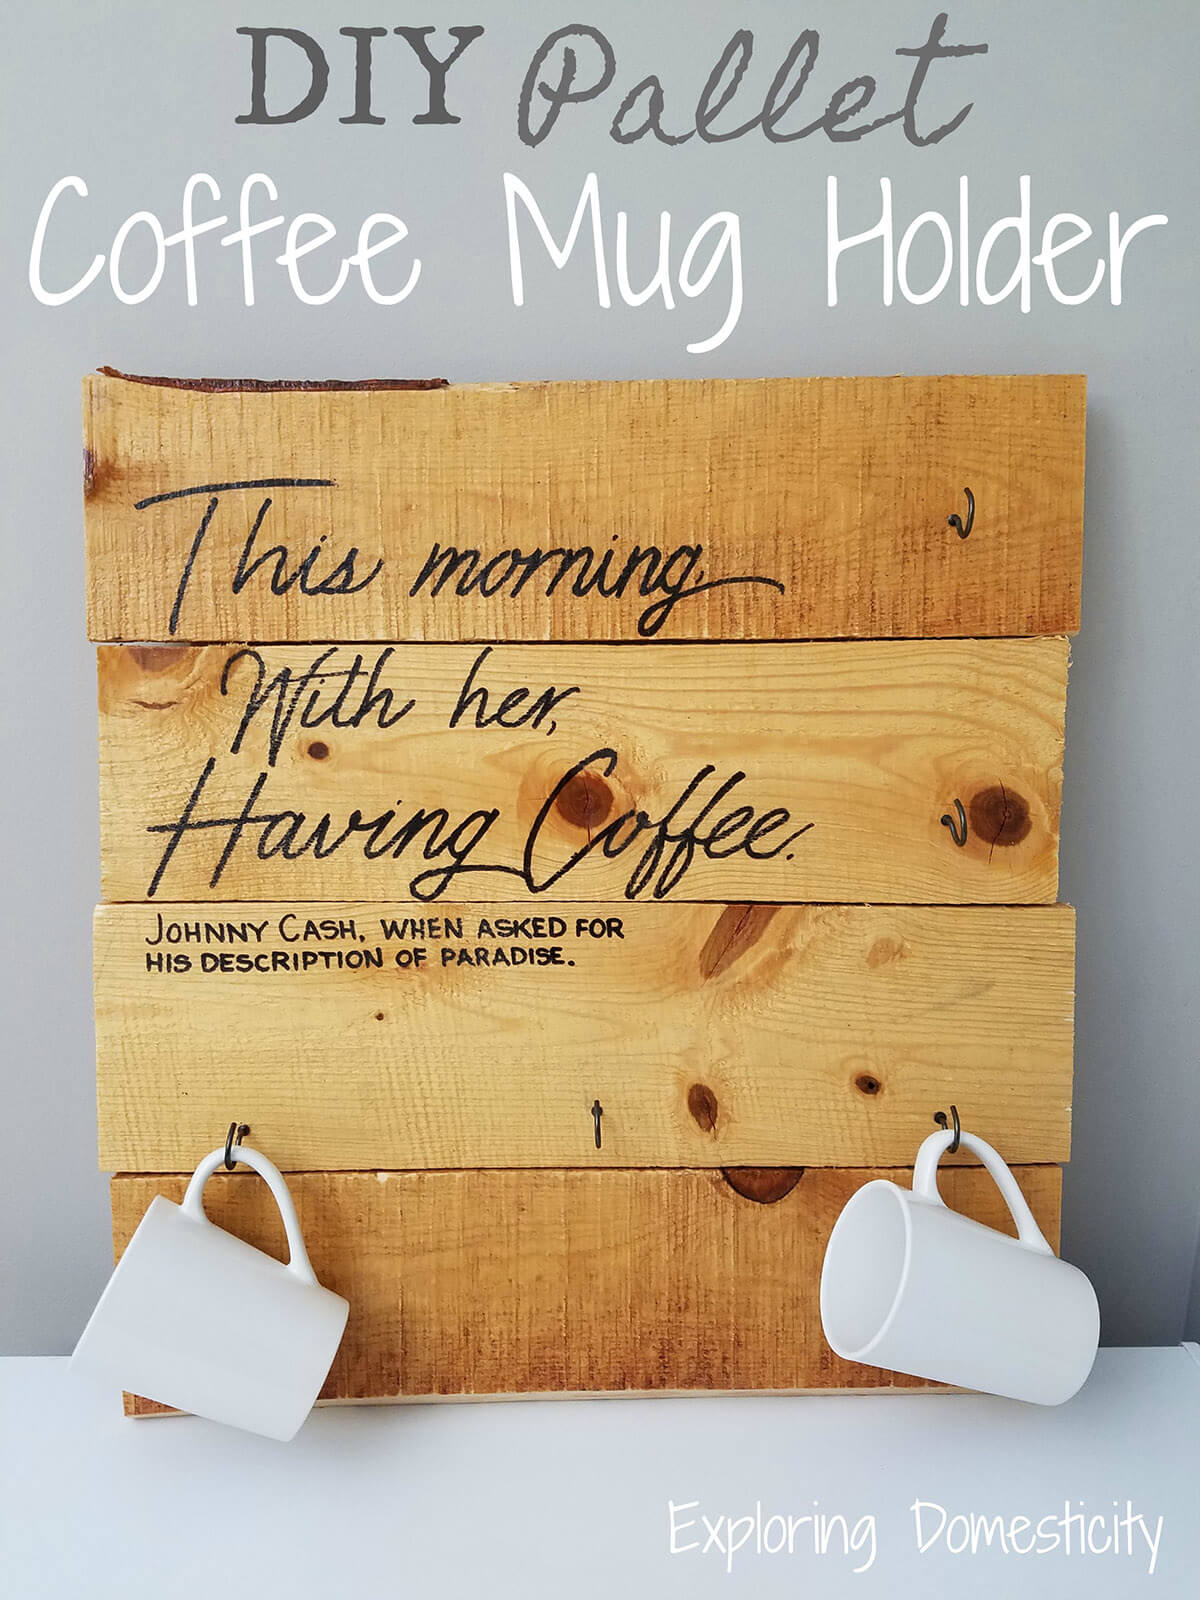 Pallet Coffee Mug Holder with Thoughtful Quote